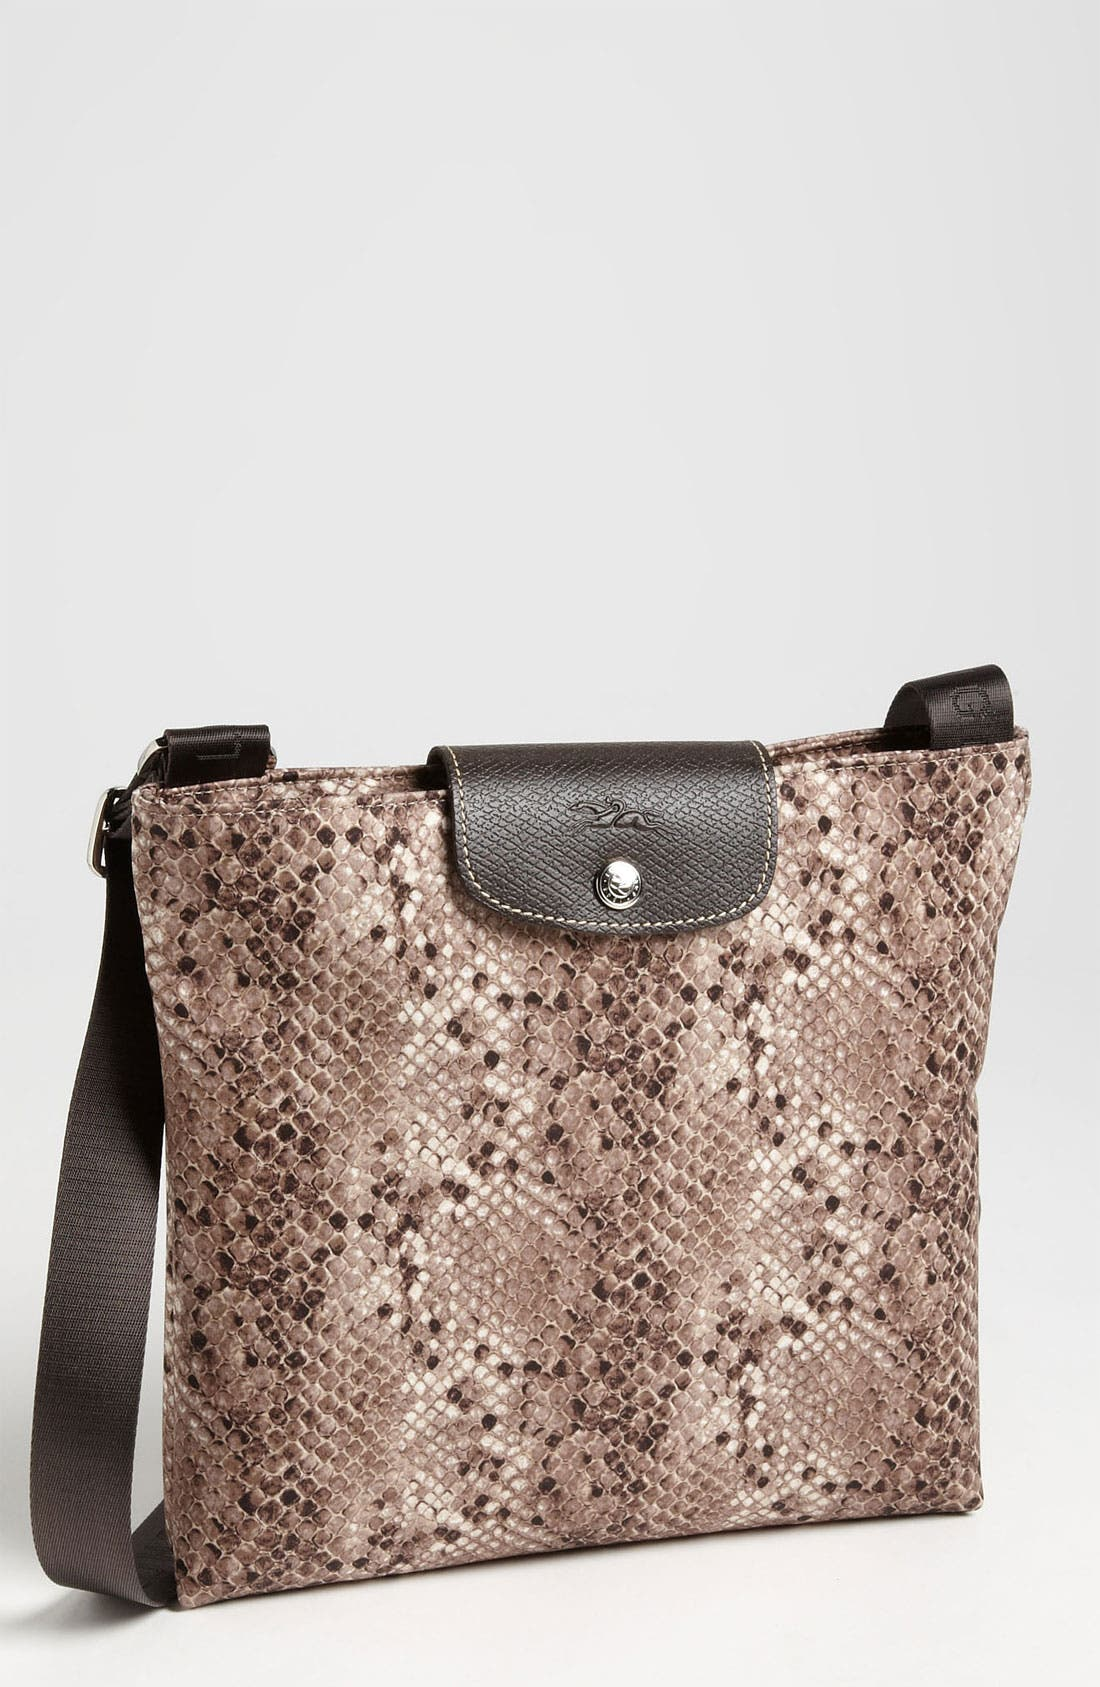 Alternate Image 1 Selected - Longchamp 'Le Pliage' Python Print Crossbody Bag